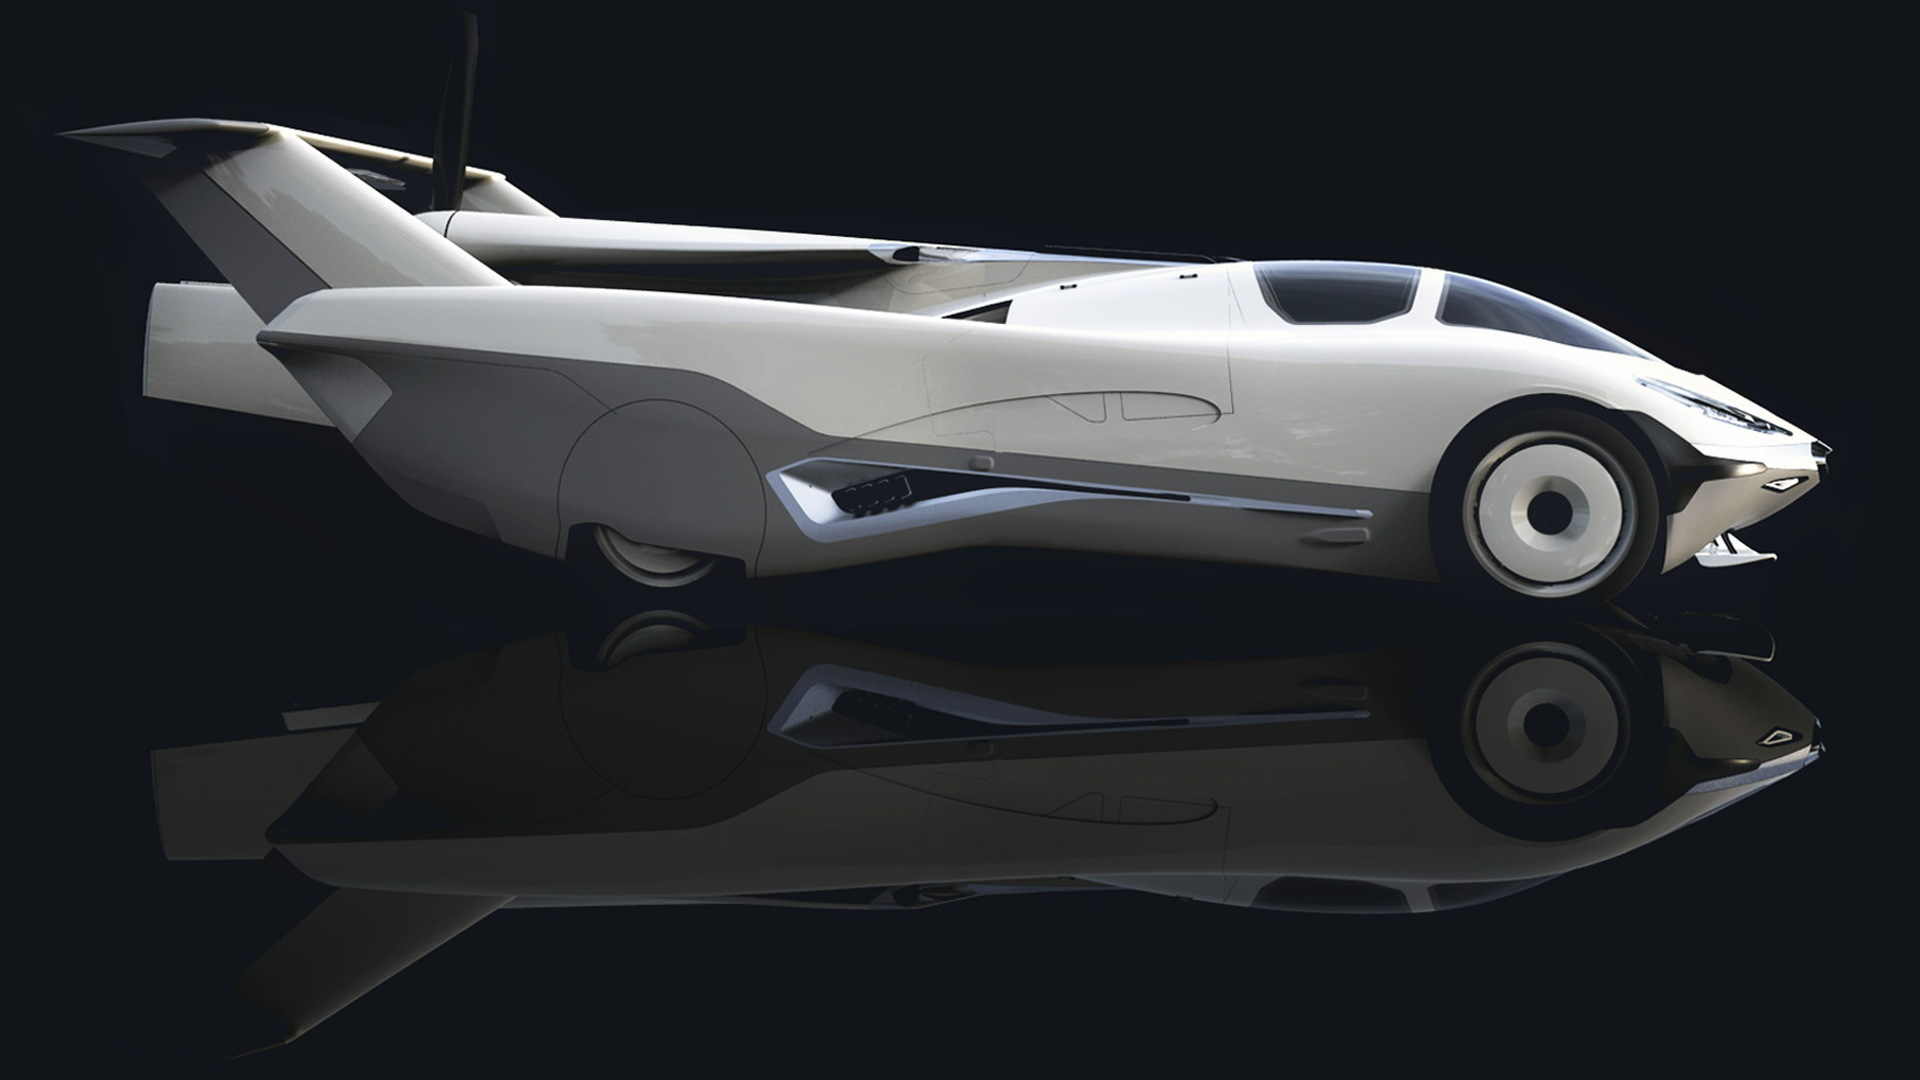 Klein Vision promises flying car for land and sky